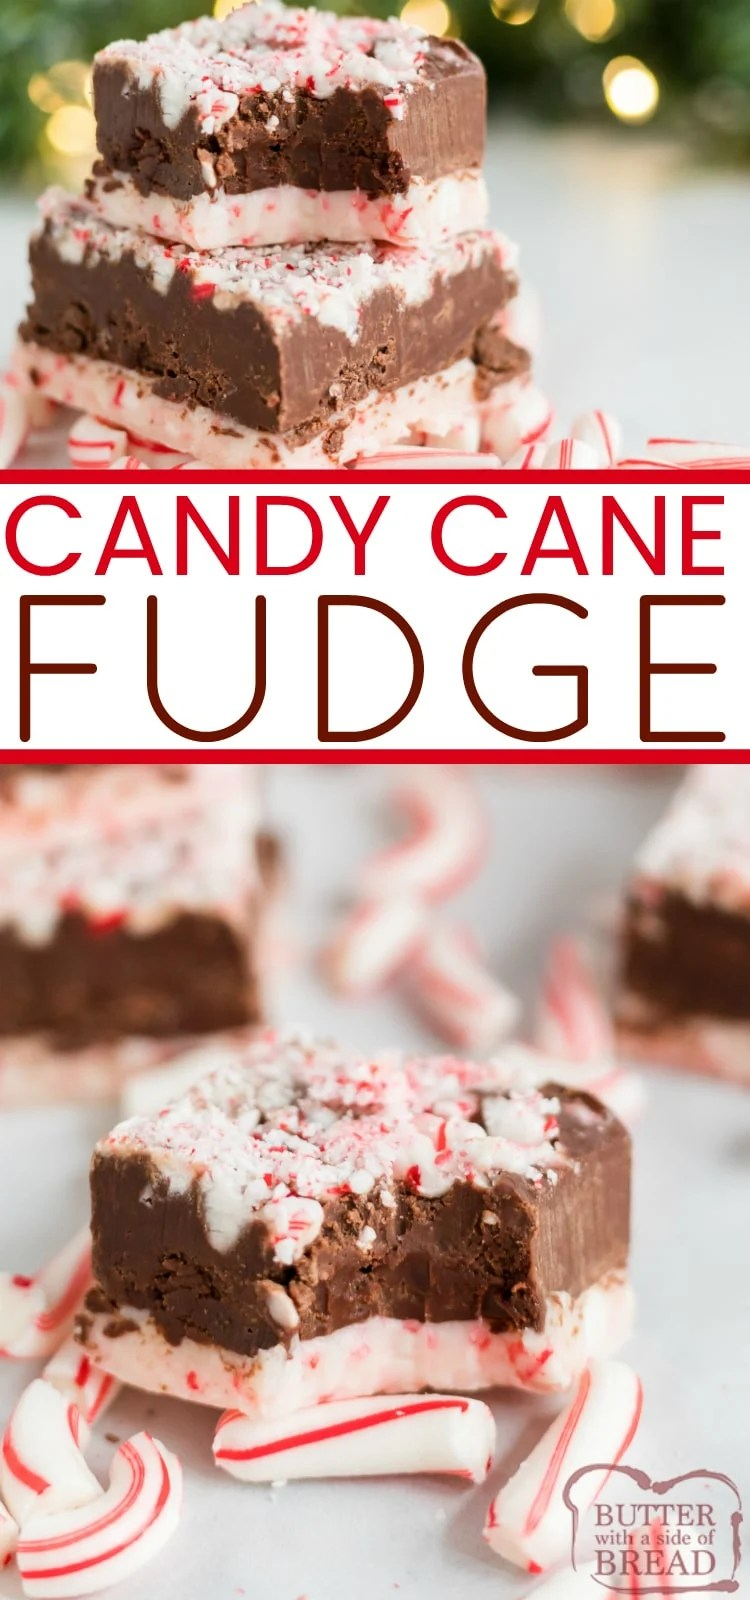 Candy Cane Fudge has a white chocolate peppermint layer on the bottom, a creamy fudge layer in the middle and crushed candy canes on top.  This easy peppermint fudge recipe is easily made in the microwave with only 6 ingredients!